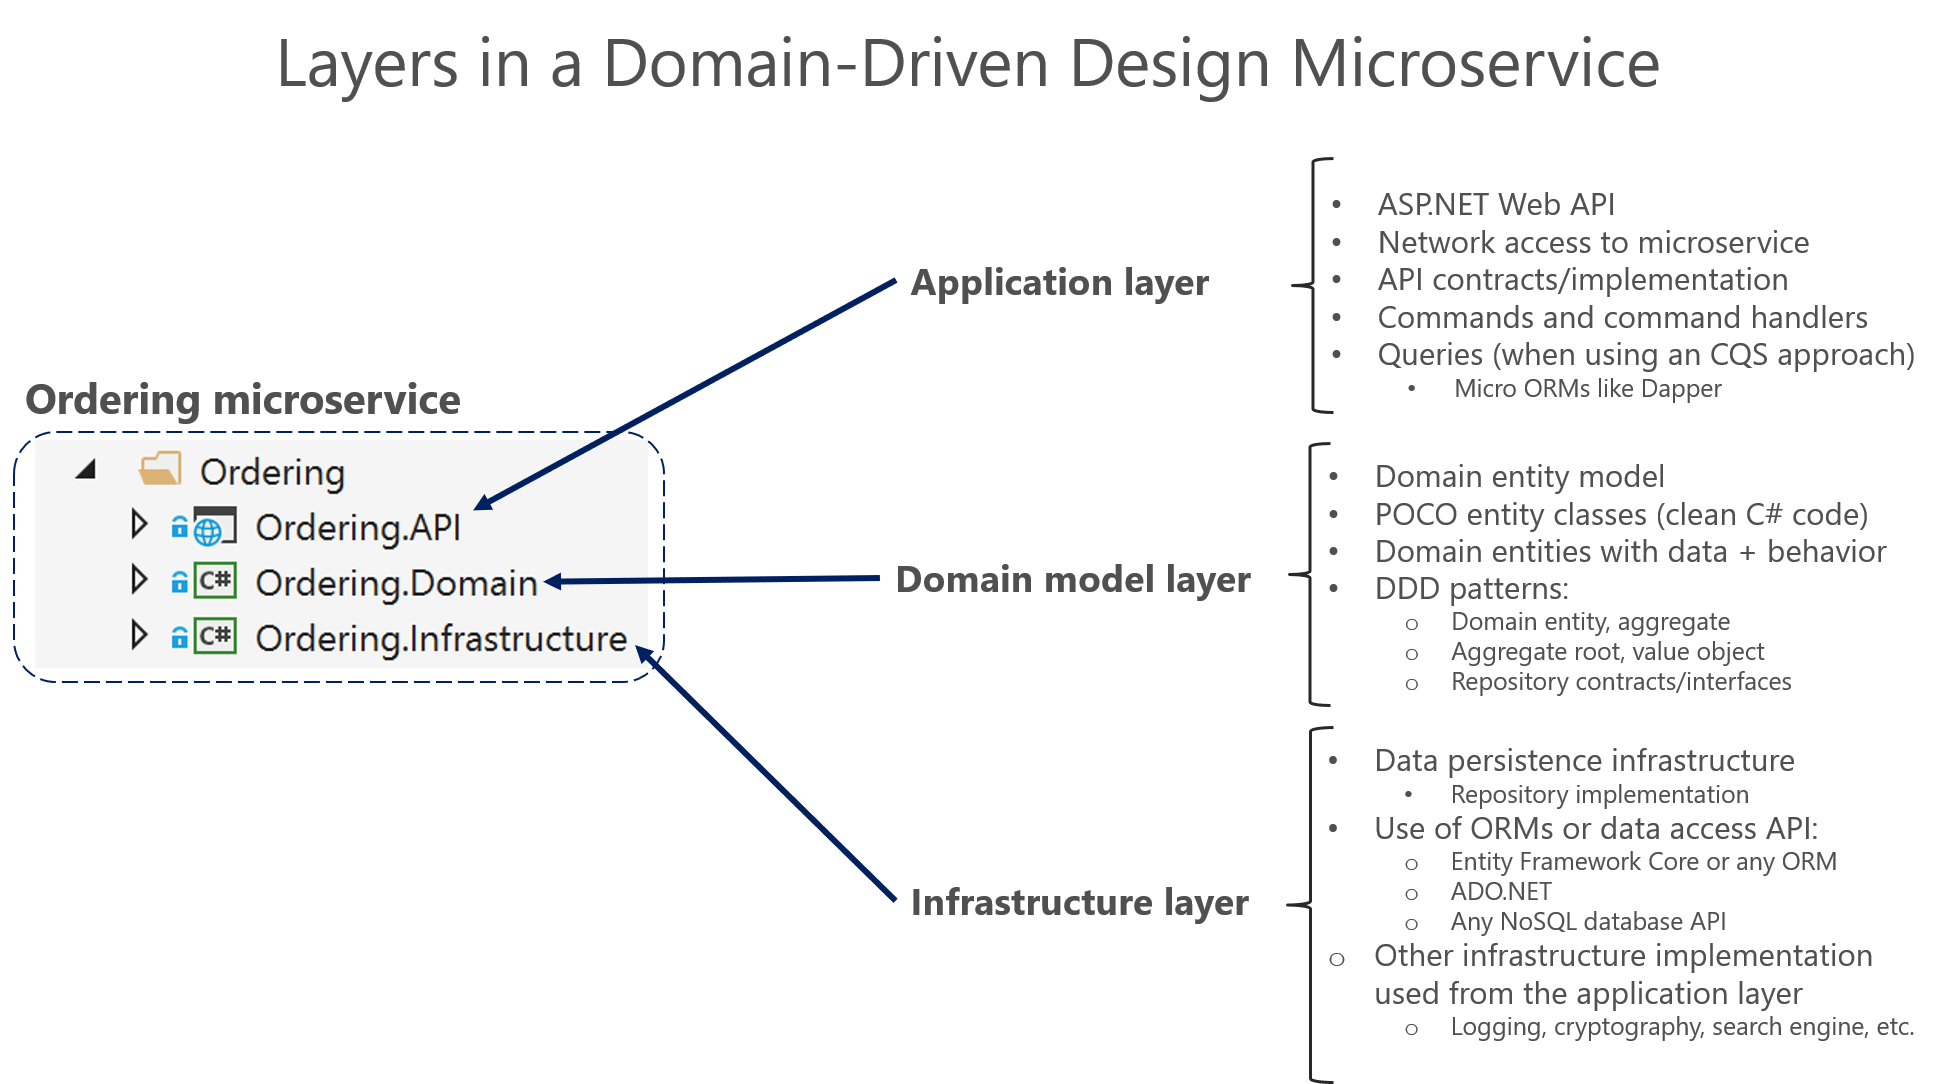 Designing a DDDoriented microservice Microsoft Docs